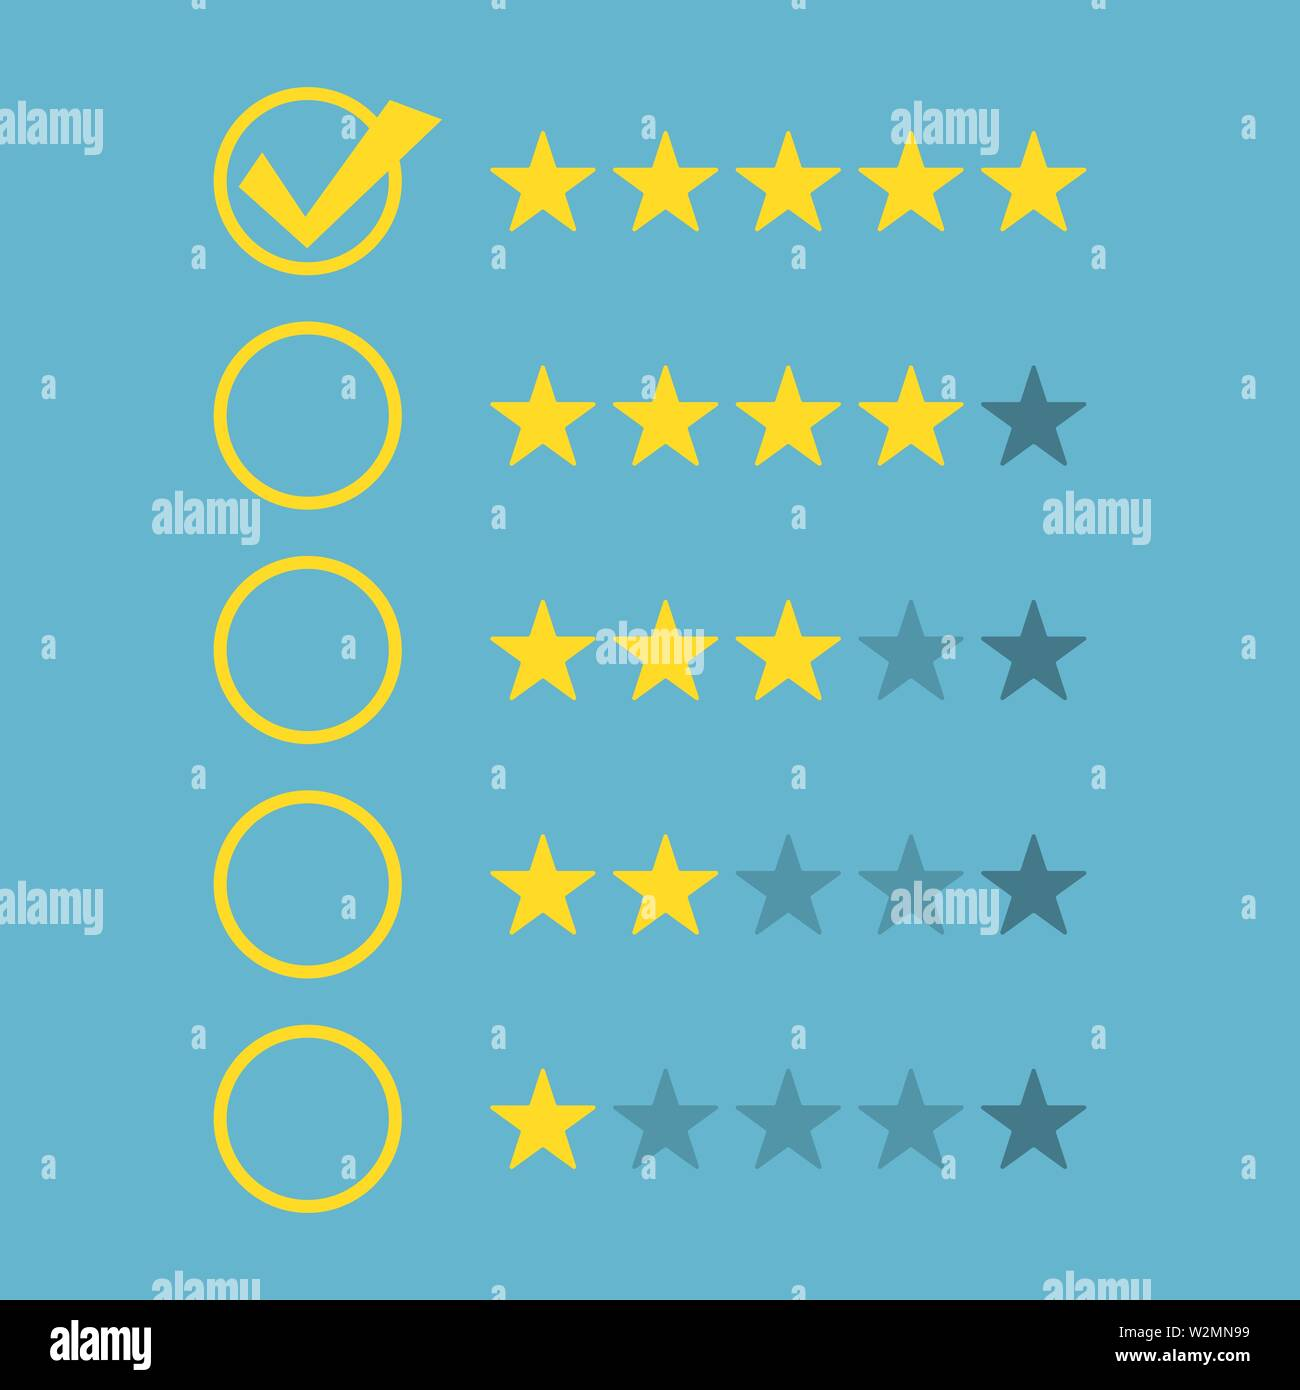 Reting stars icon concept background. Vector eps10 - Stock Image